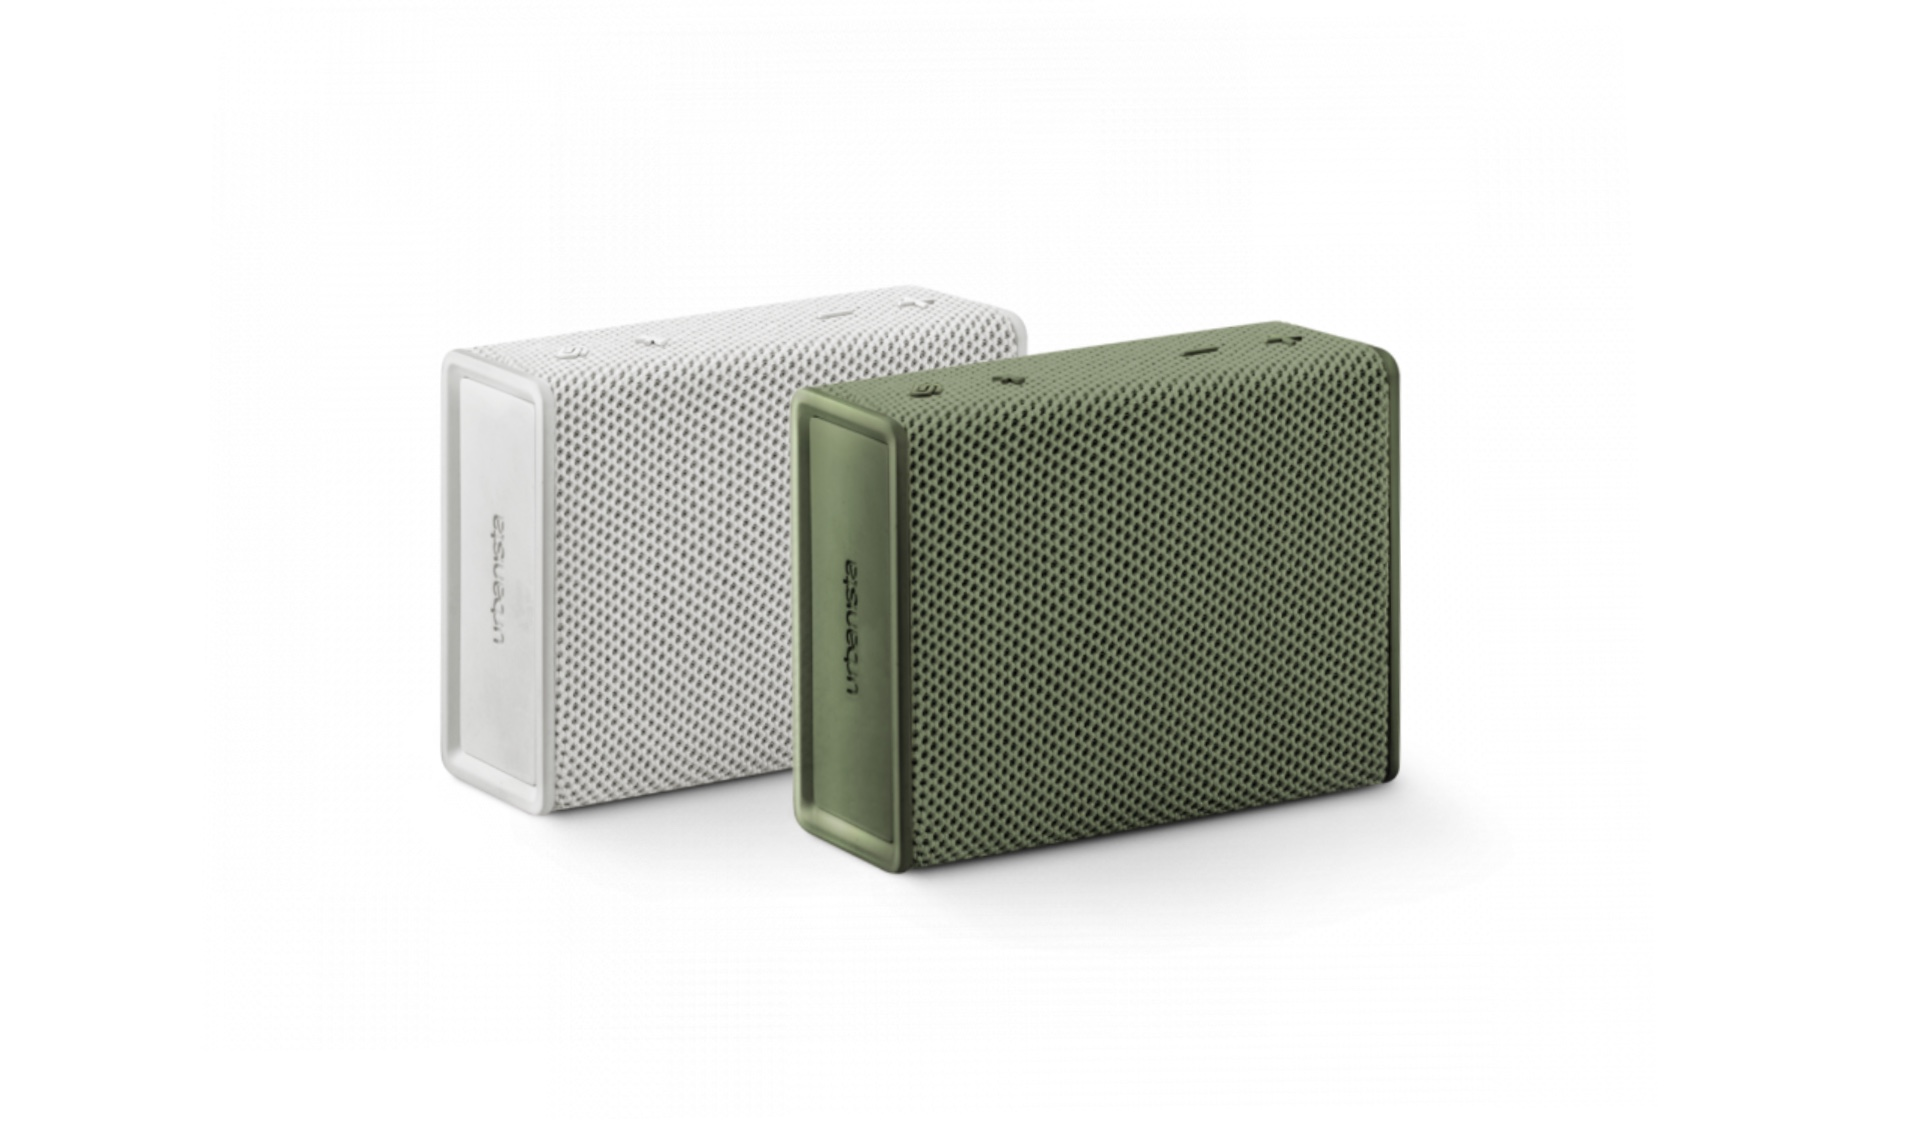 Urbanista Sydney Portable Speaker Review